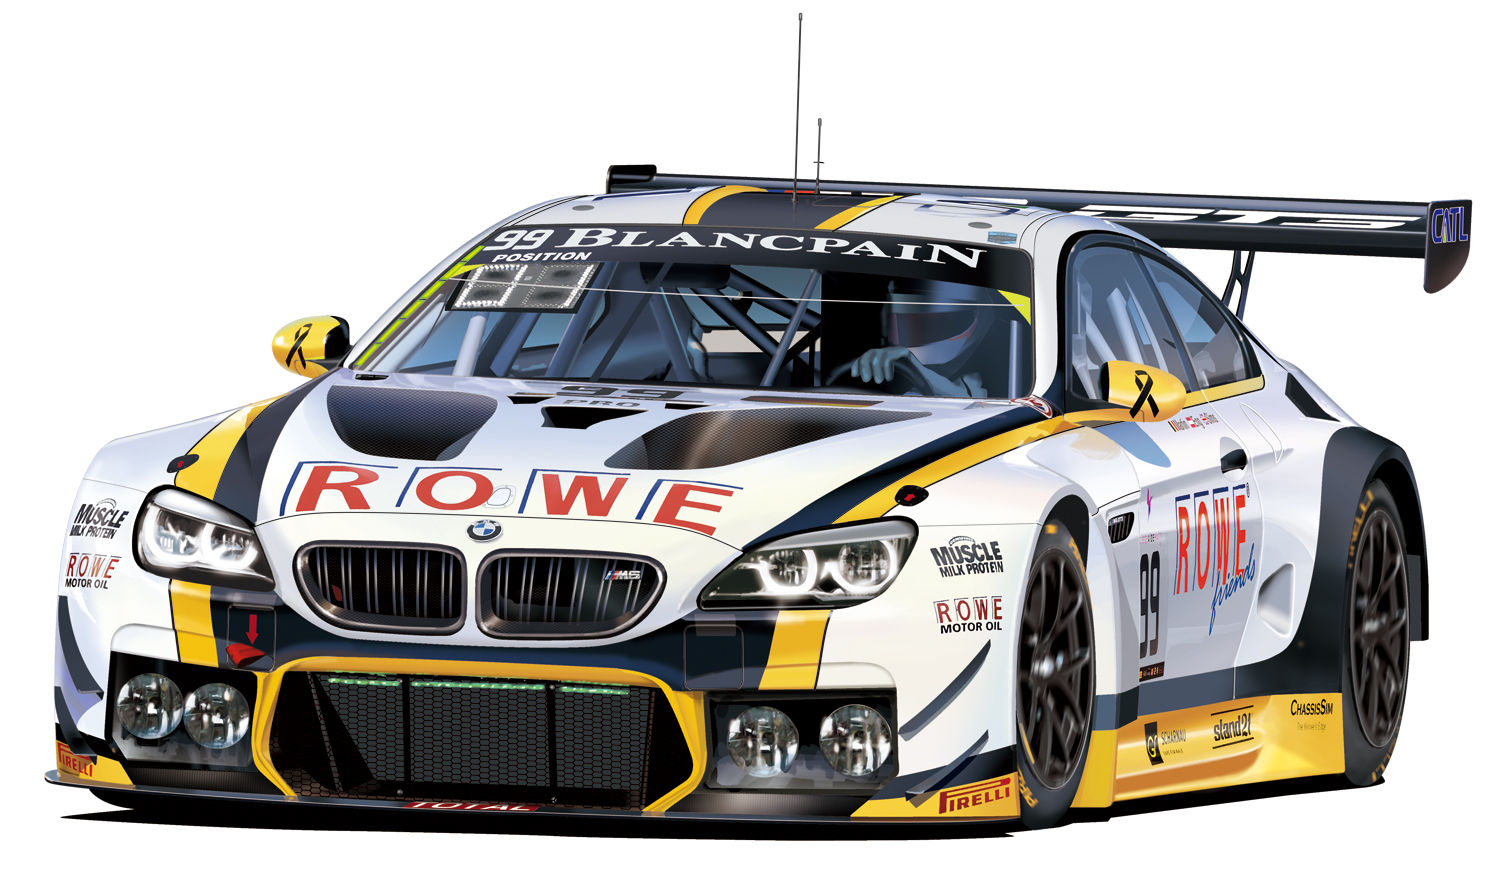 bmw m6 gt3 2016 total 24 hours of spa winner detailing up parts for winer pre order toyland. Black Bedroom Furniture Sets. Home Design Ideas